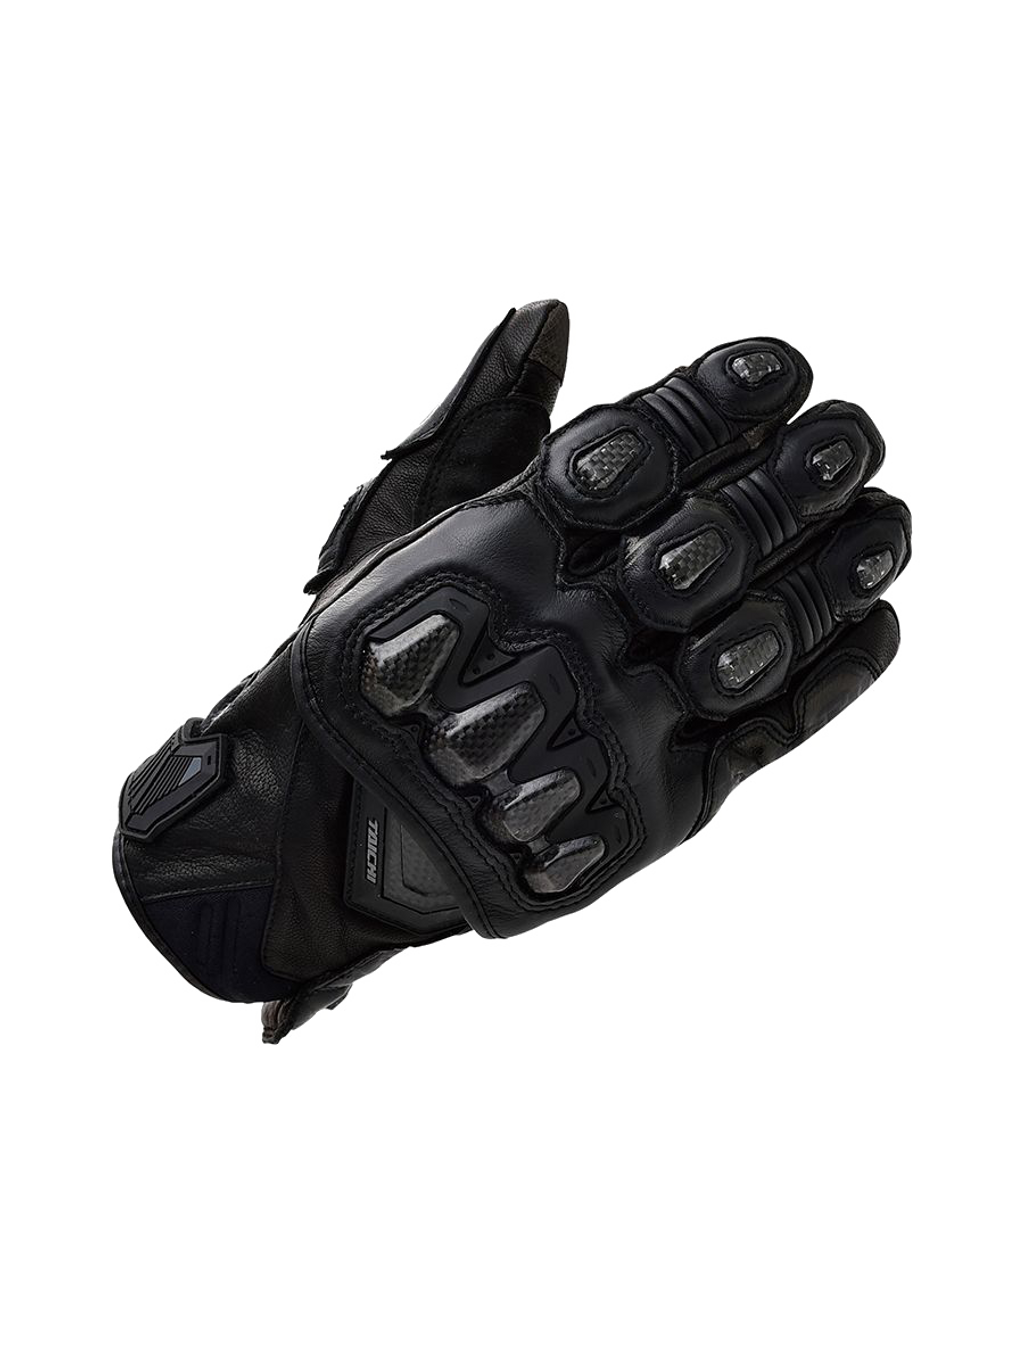 02 RS TAICHI RST422 HIGH PROTECTION LEATHER GLOVE black.png